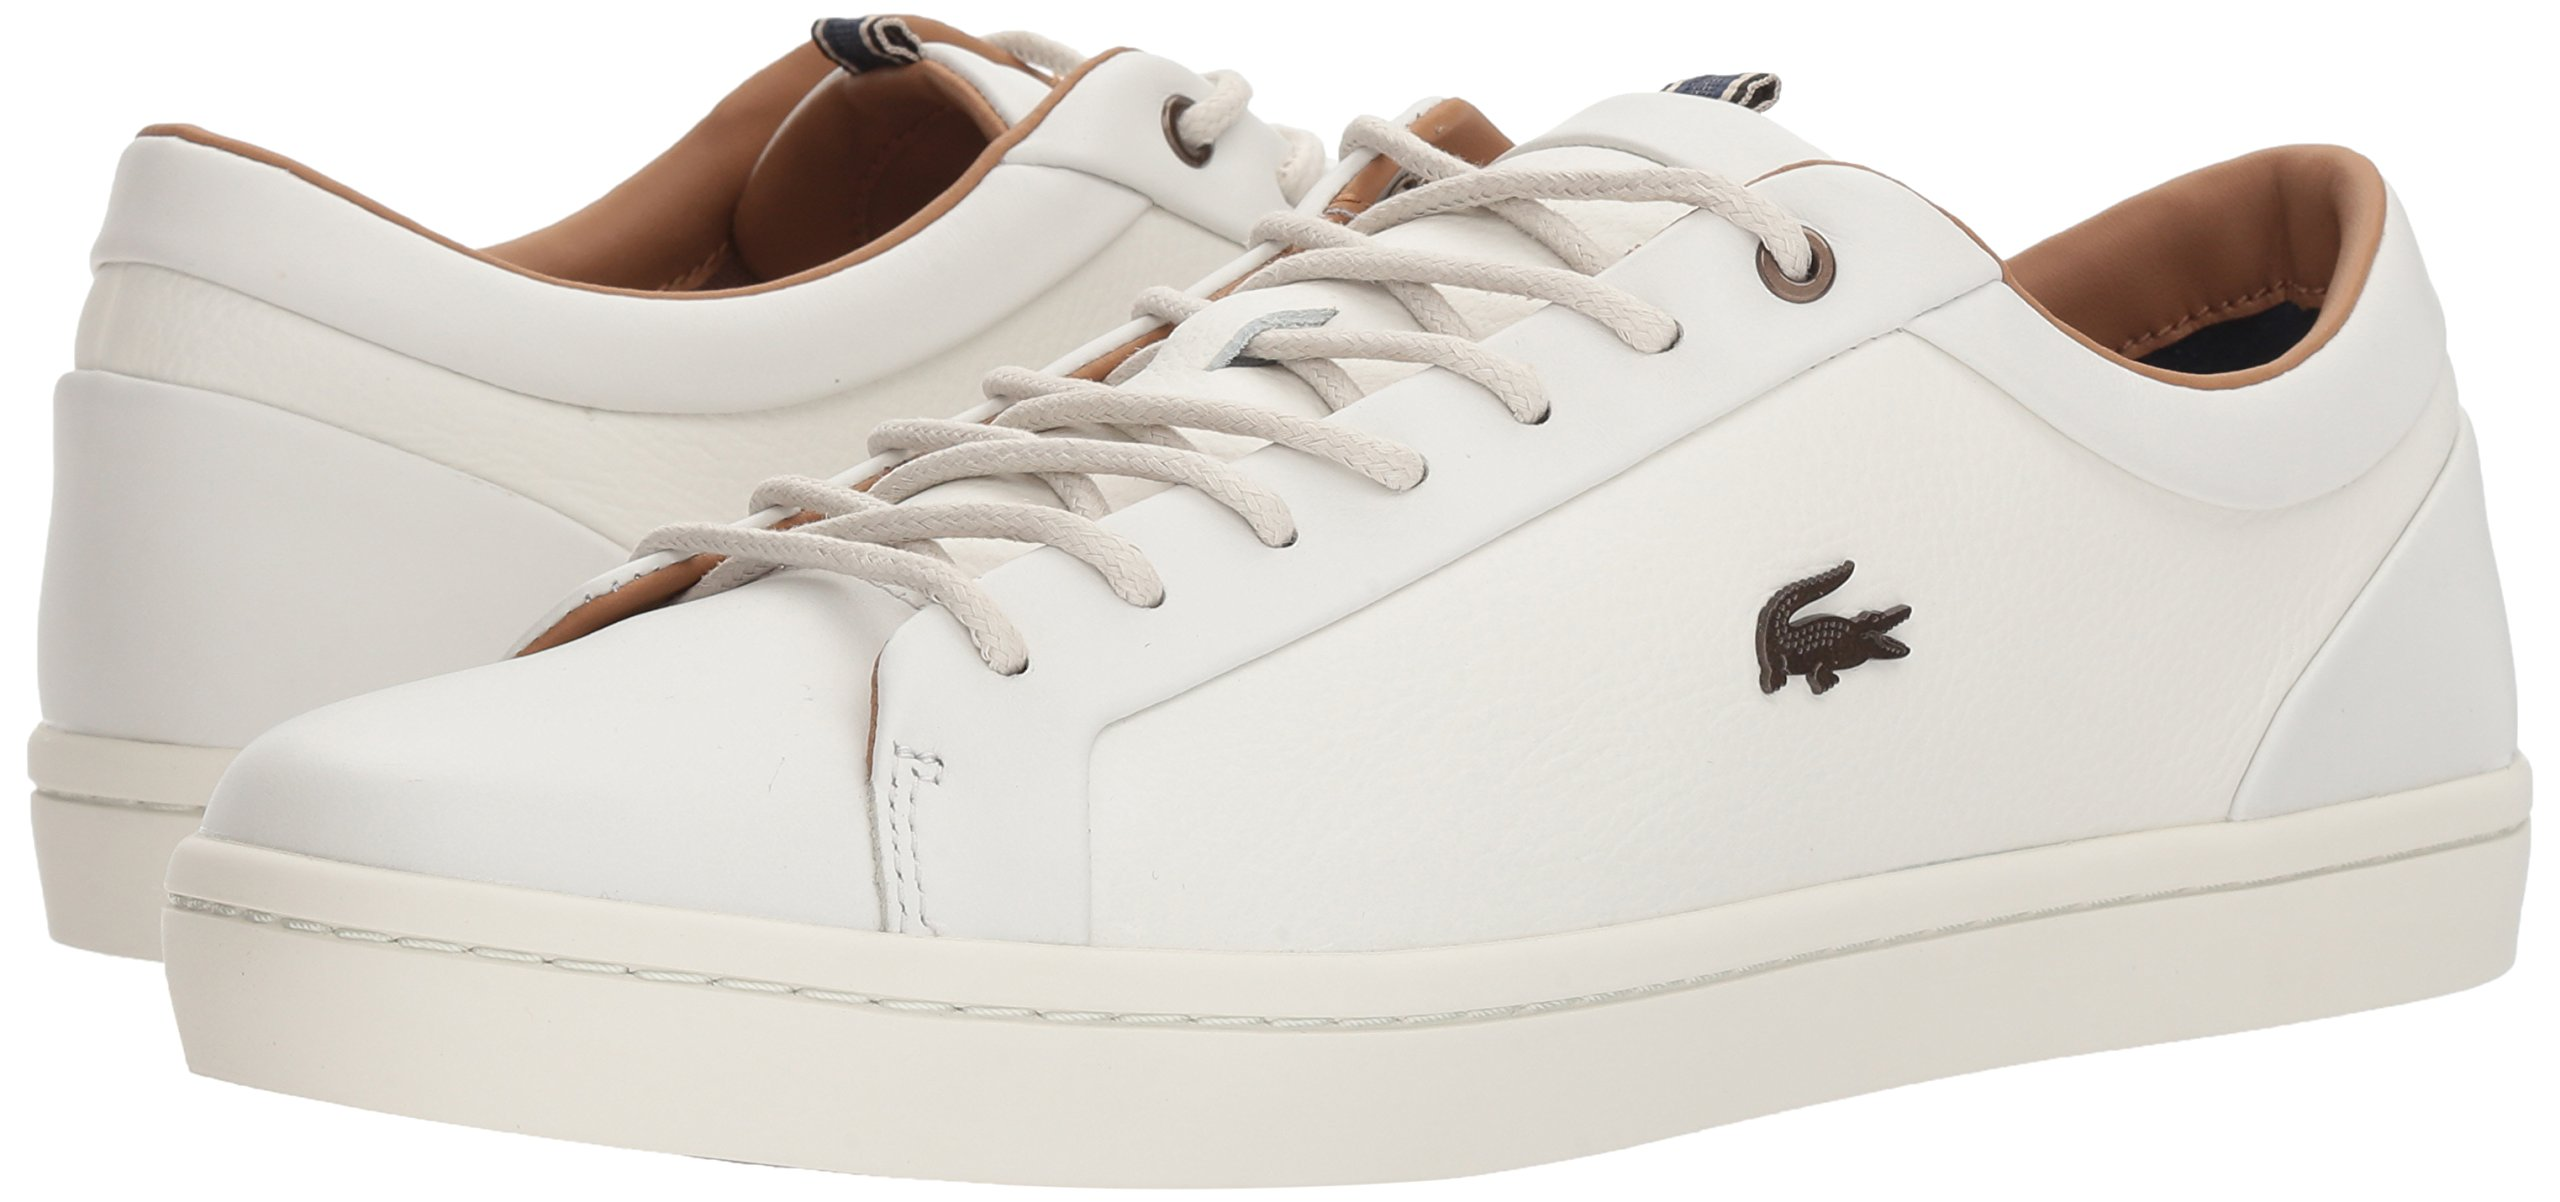 Lacoste Men's Straightset Sneakers by Lacoste (Image #6)